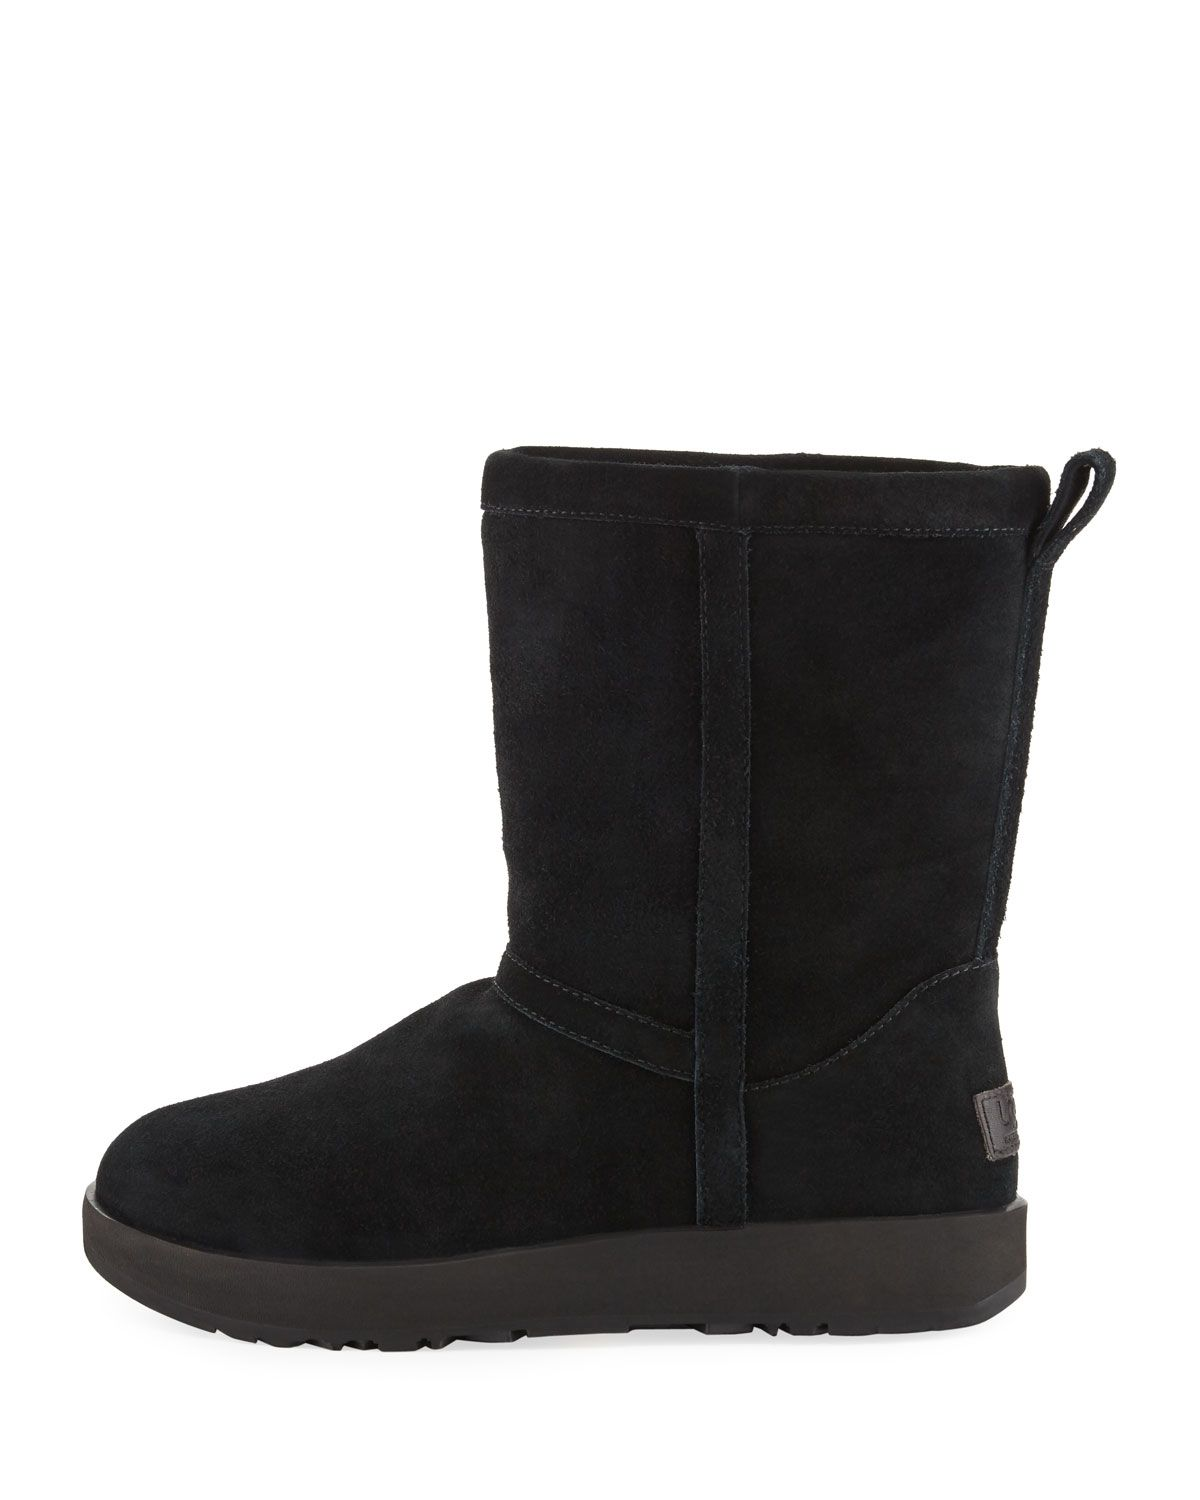 e185cccae20 Classic Water-Resistant Short Boot | Products | Uggs, Ugg boots ...